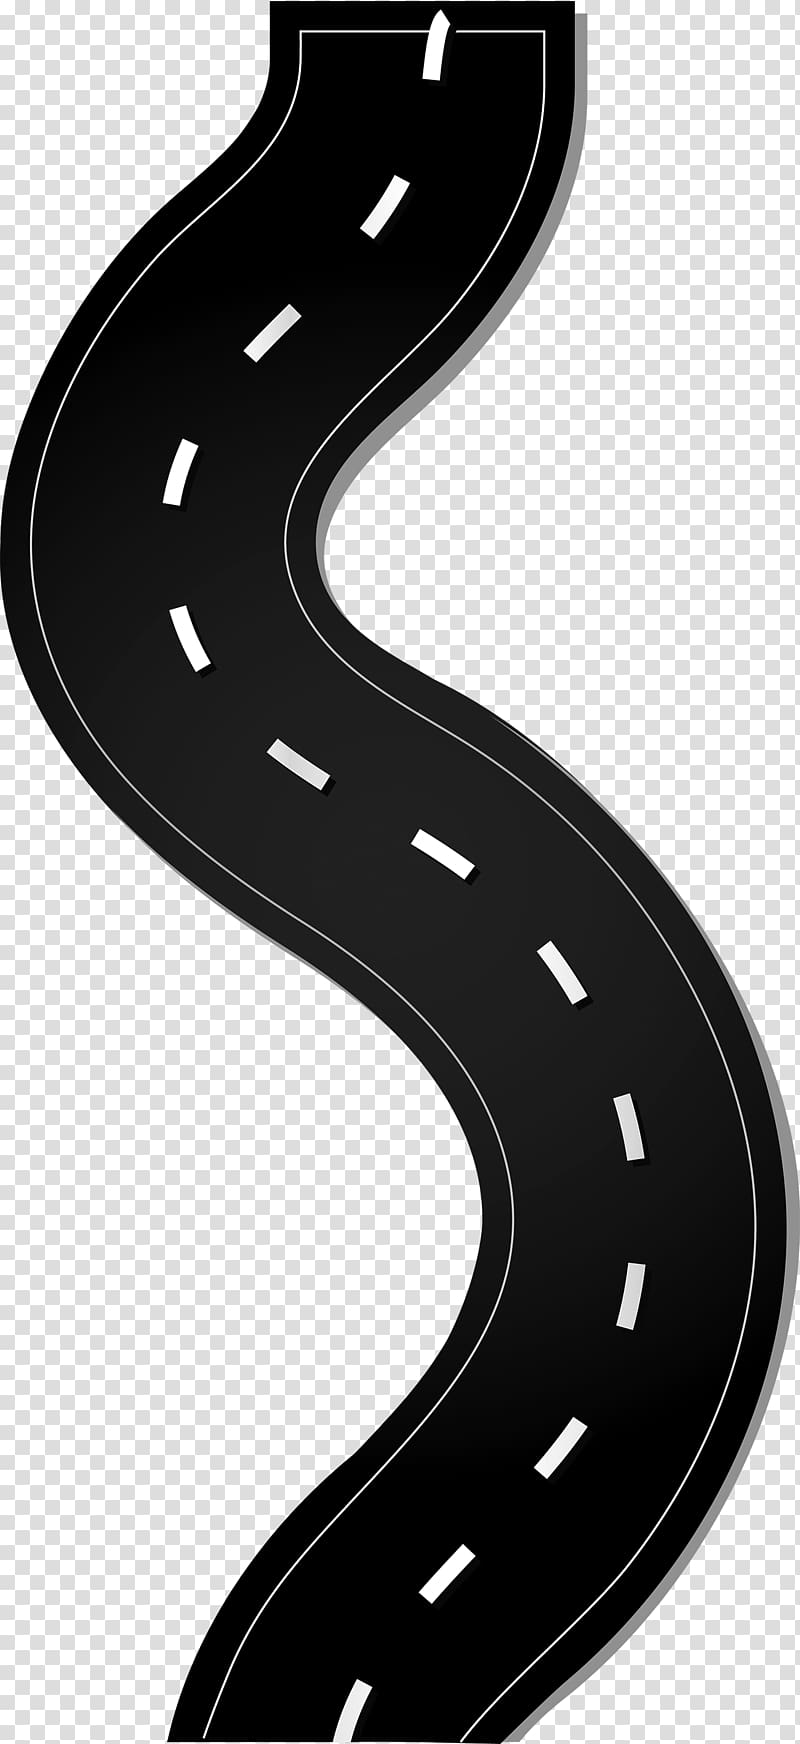 Clipart road raod. Highway winding transparent background